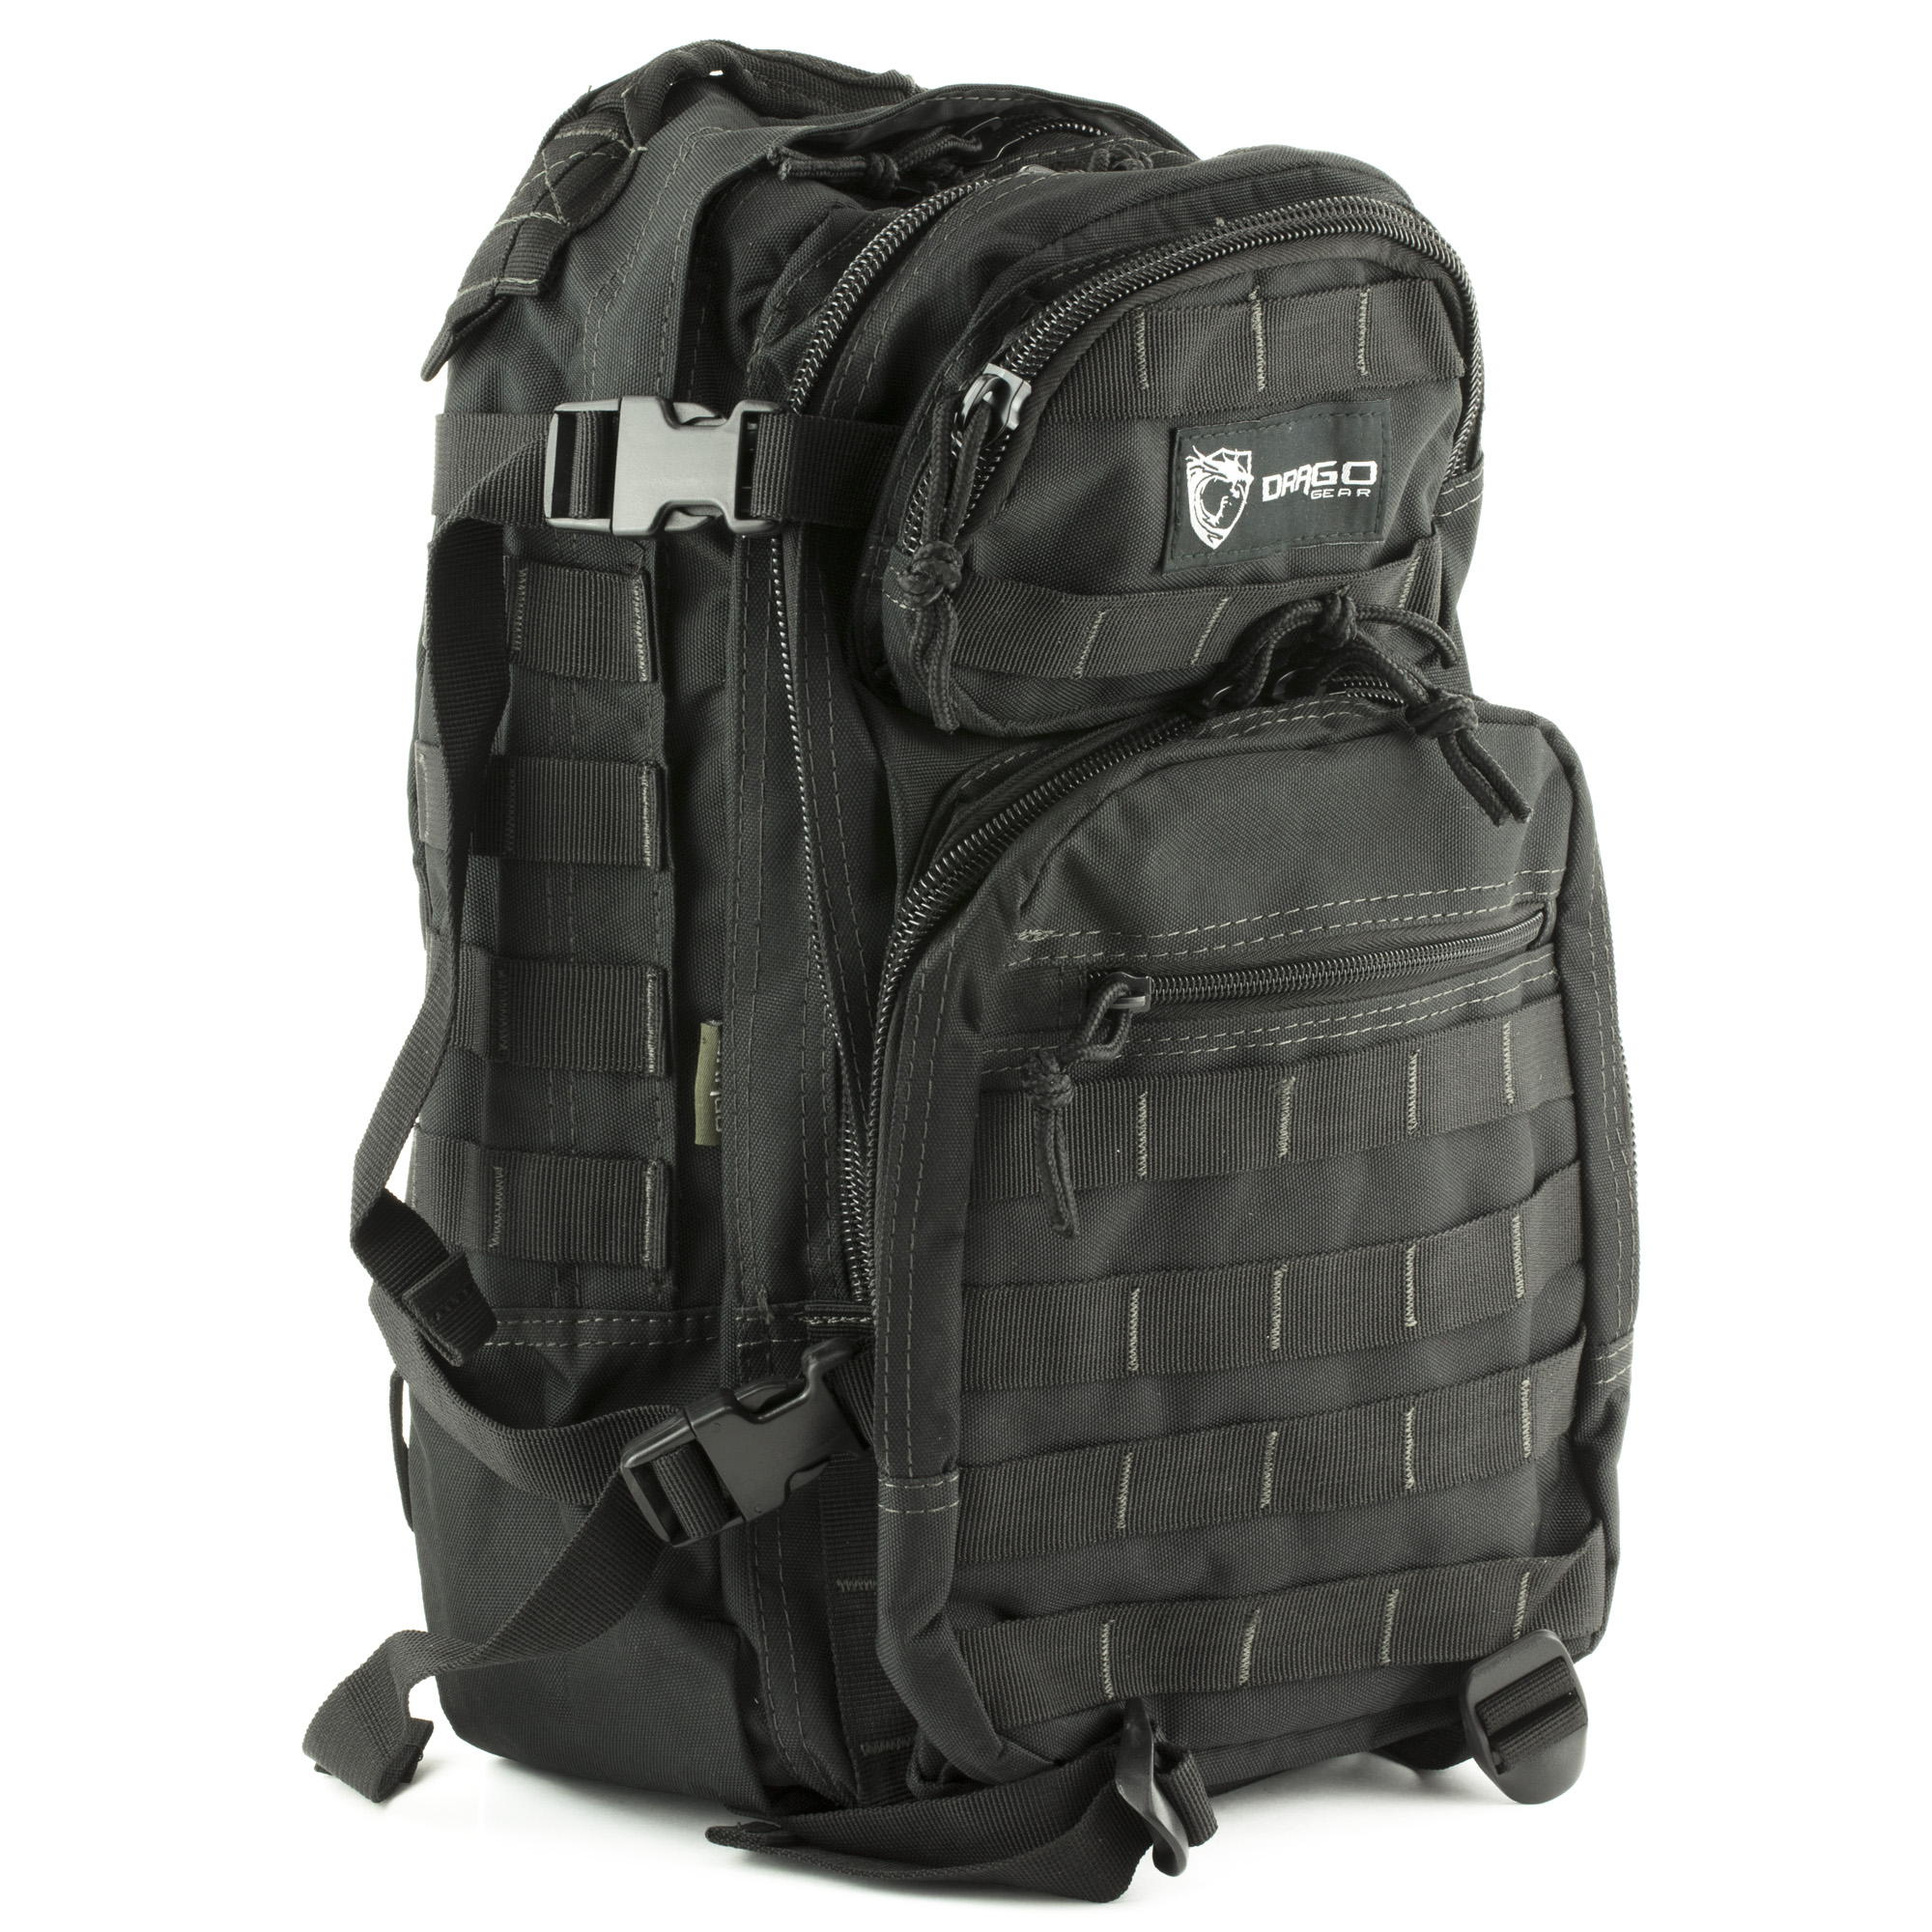 """Drago Backpacks are designed to allow the user to comfortably carry and efficiently access their gear while on the go. Manufactured for maximum durability"""" Drago backpacks will outlast the toughest jobs and keep equipment protected from the harshest environments"""" time and time again."""